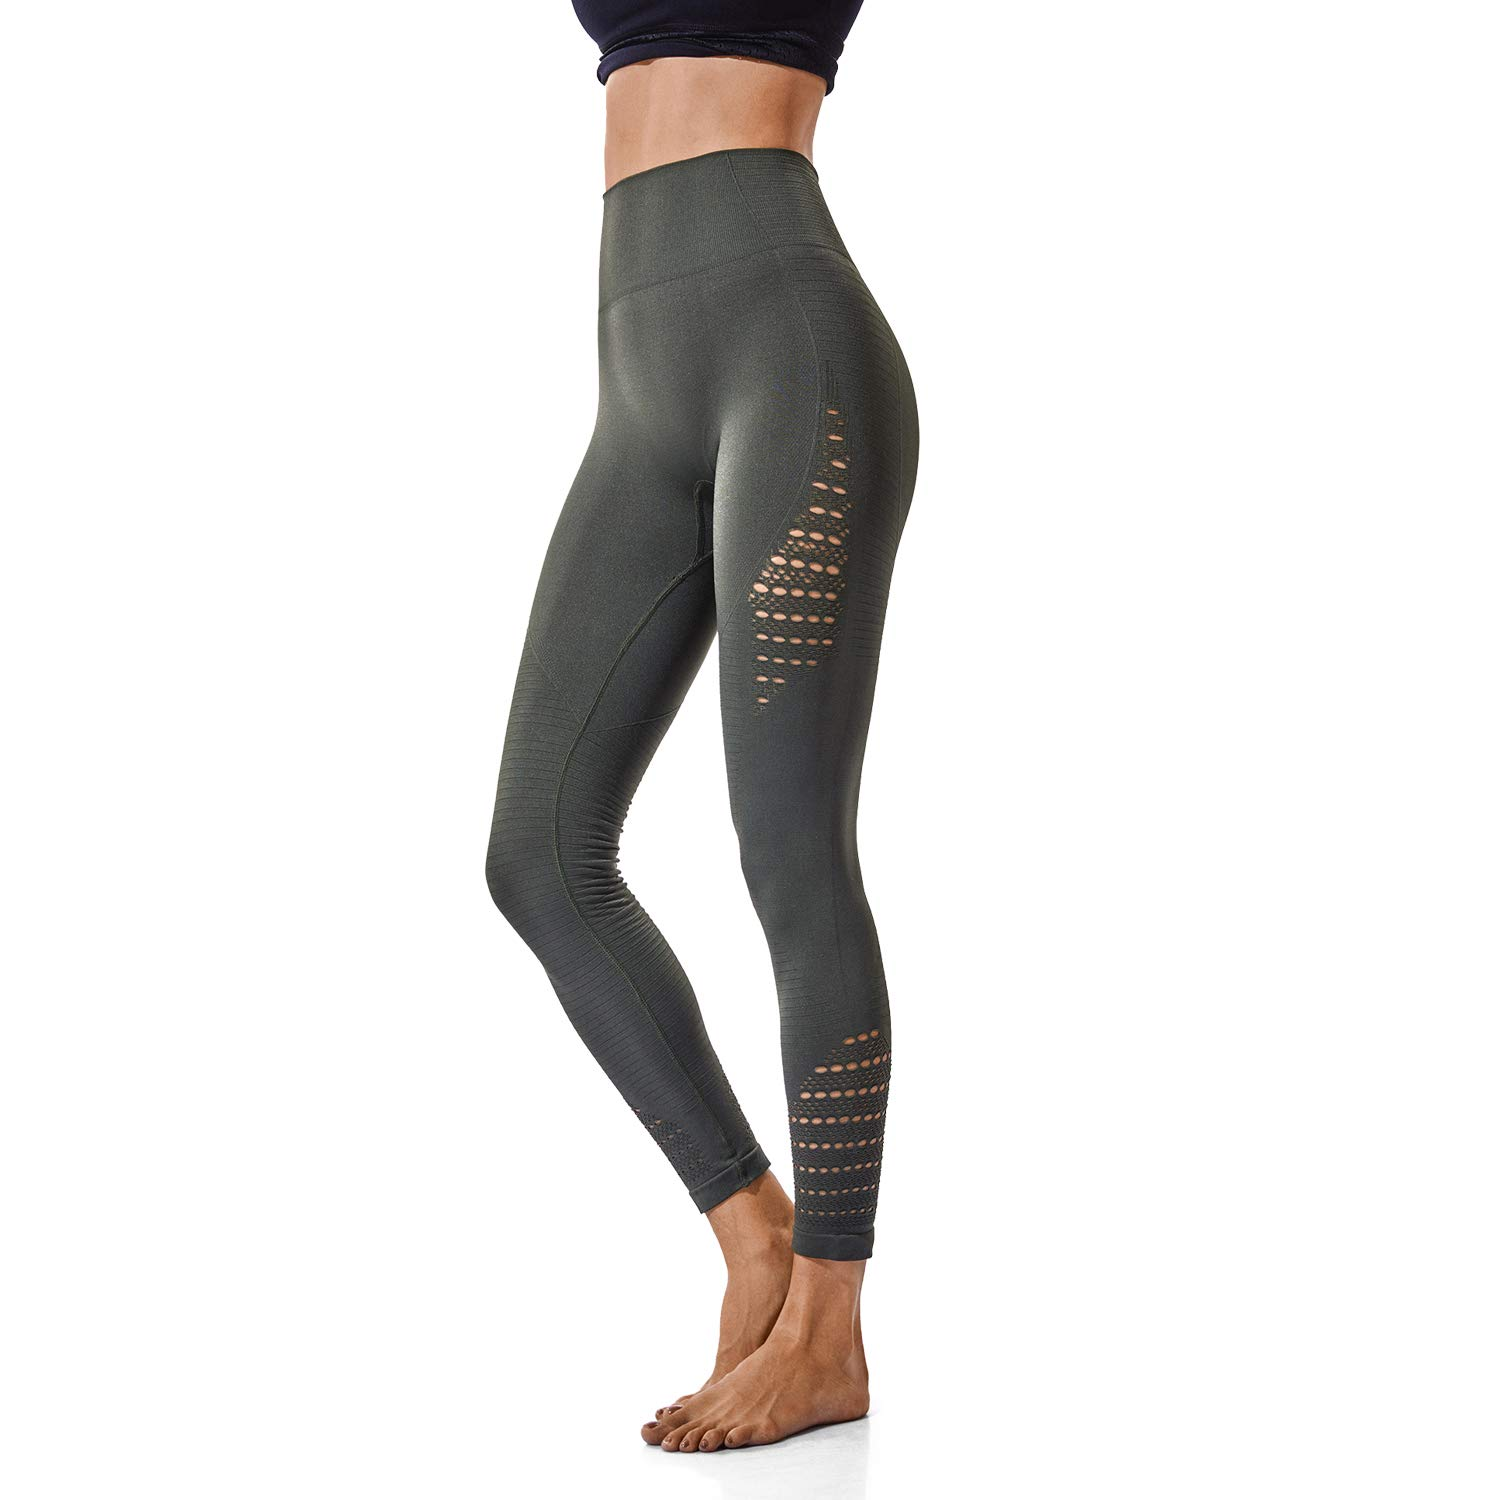 2955d7d9eaf06 FITTOO High Waisted Seamless Yoga Pants Gym Workout Leggings for Women  Tummy Control at Amazon Women's Clothing store: